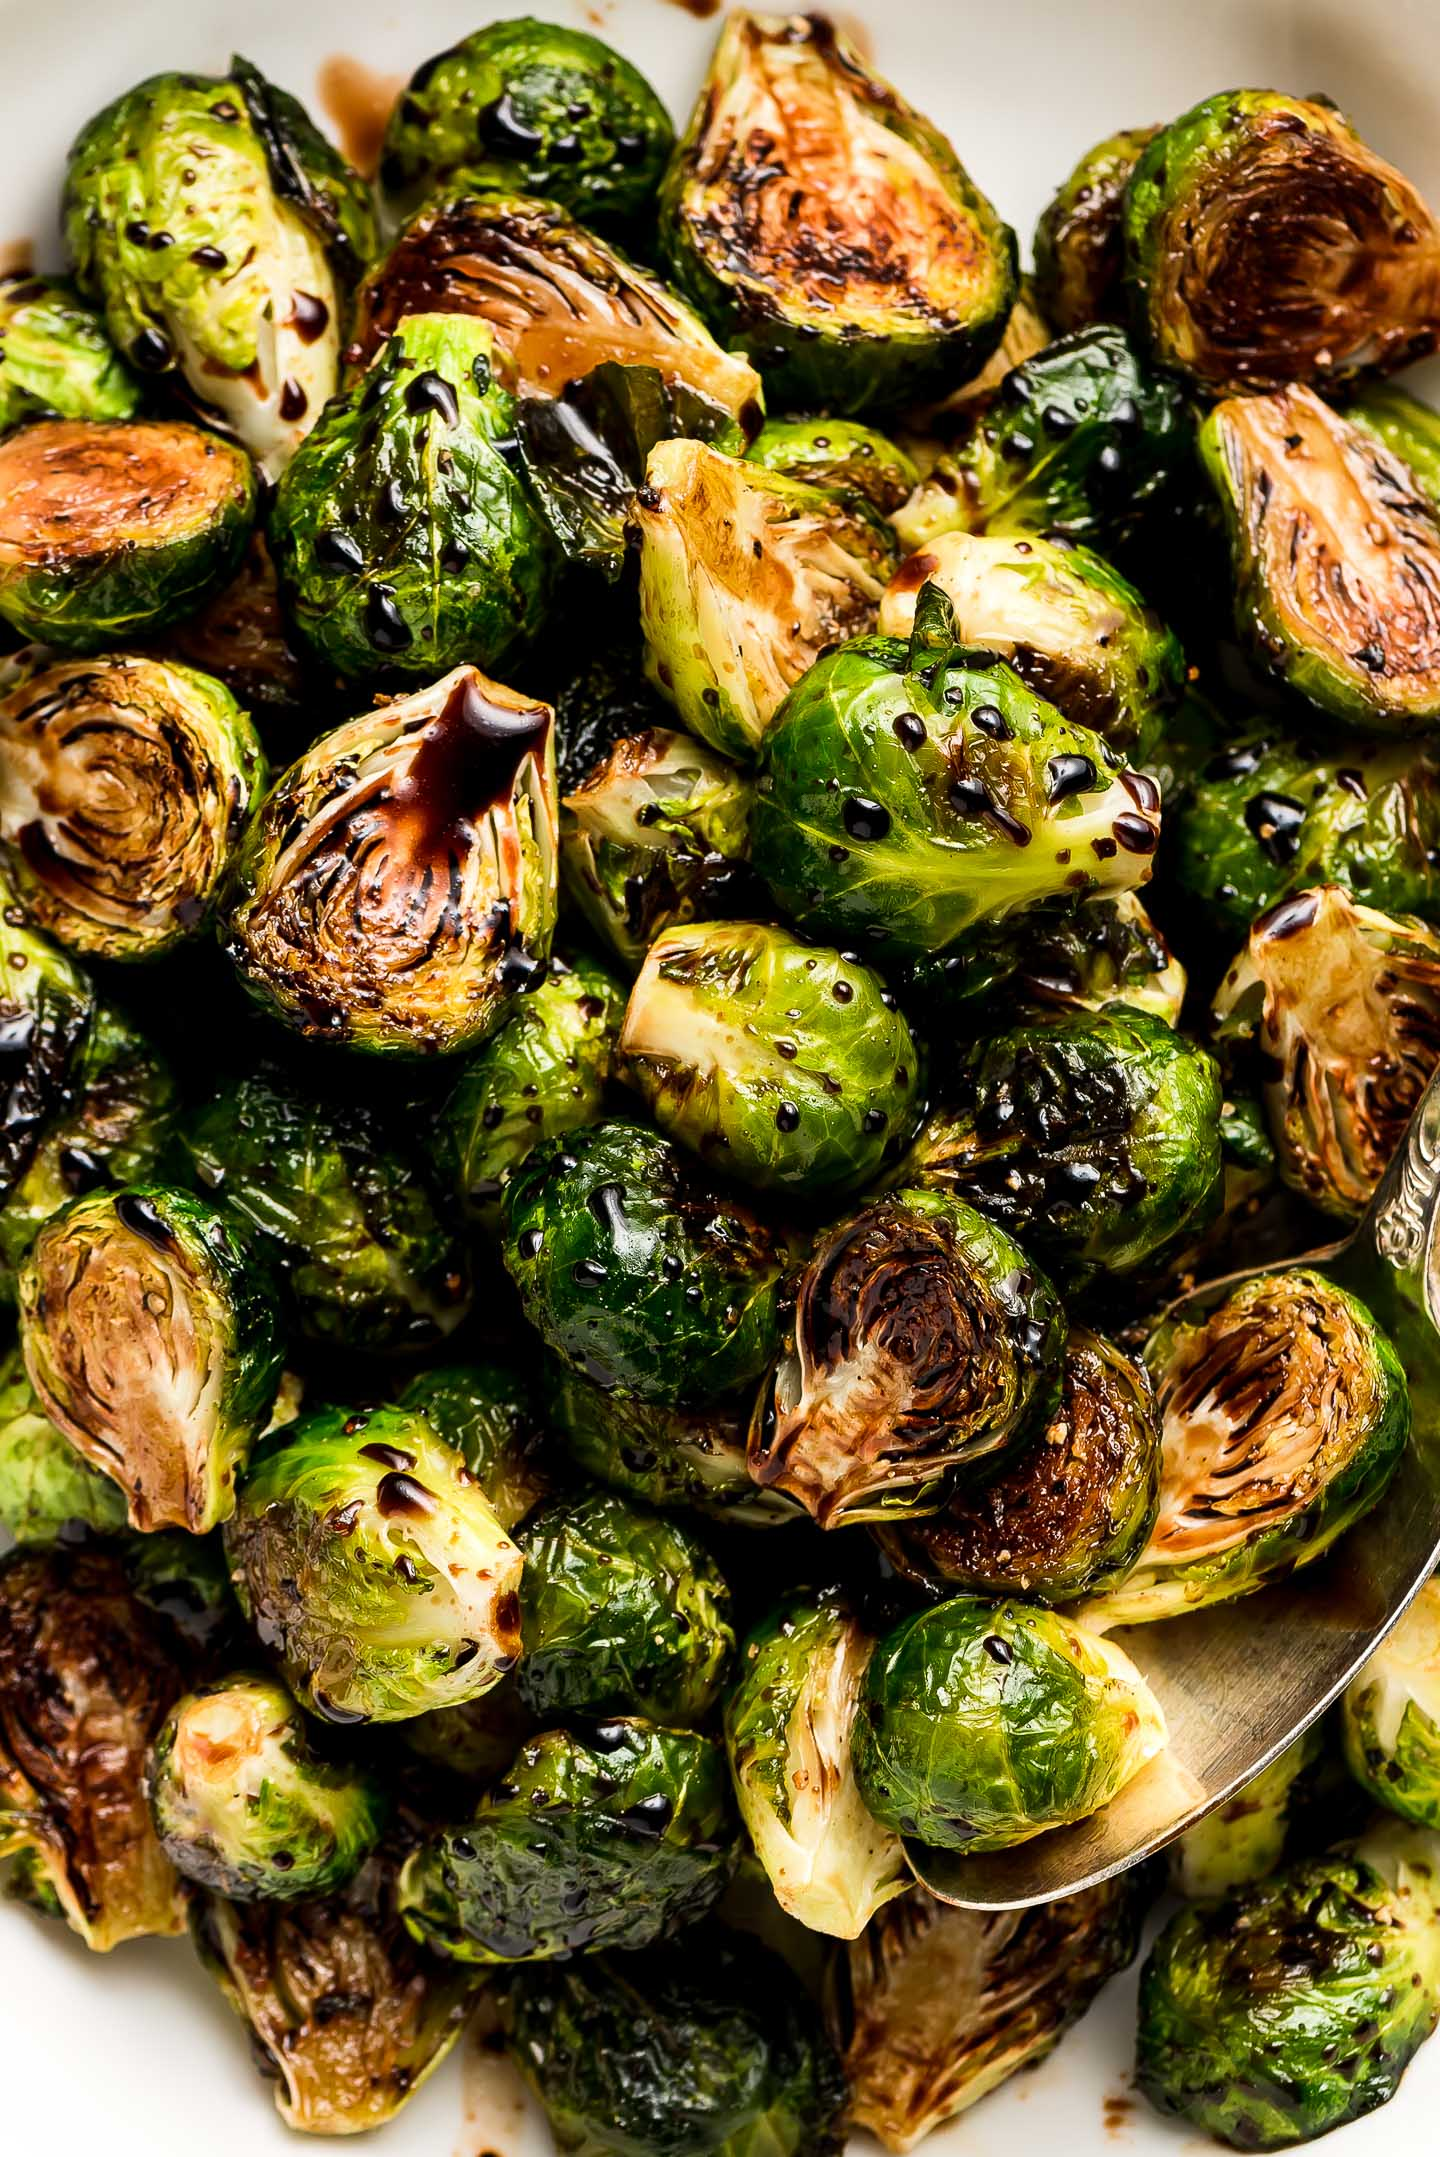 A close up of Roasted Brussel Sprouts with Balsamic Glaze.